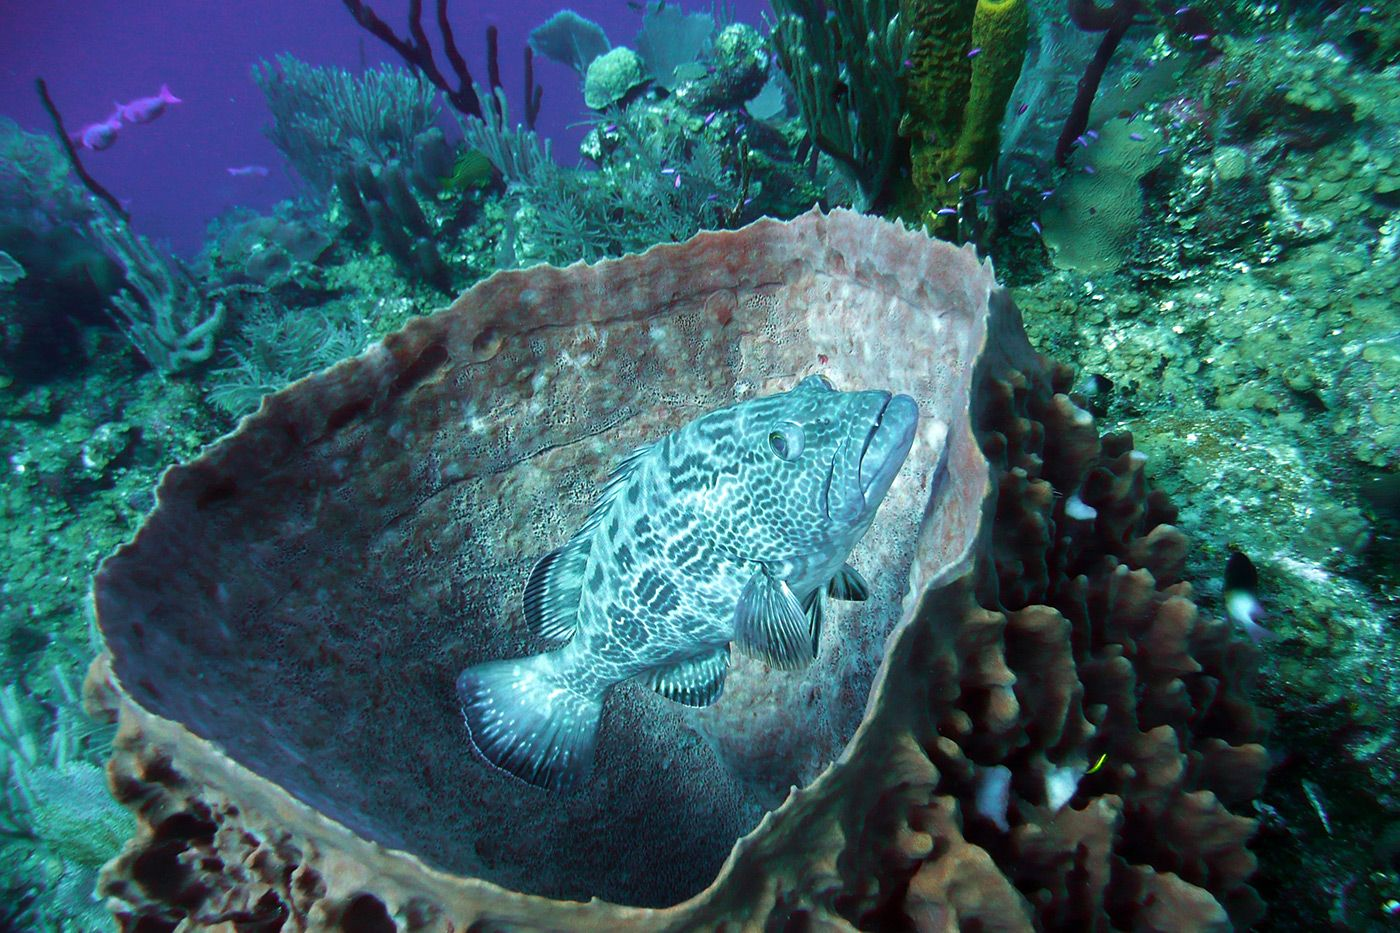 Sustainable Seafood Delicacies Emerge in Belize: Close relationships with conservation organizations help Belize to stay environmentally responsible in its seafood industry.